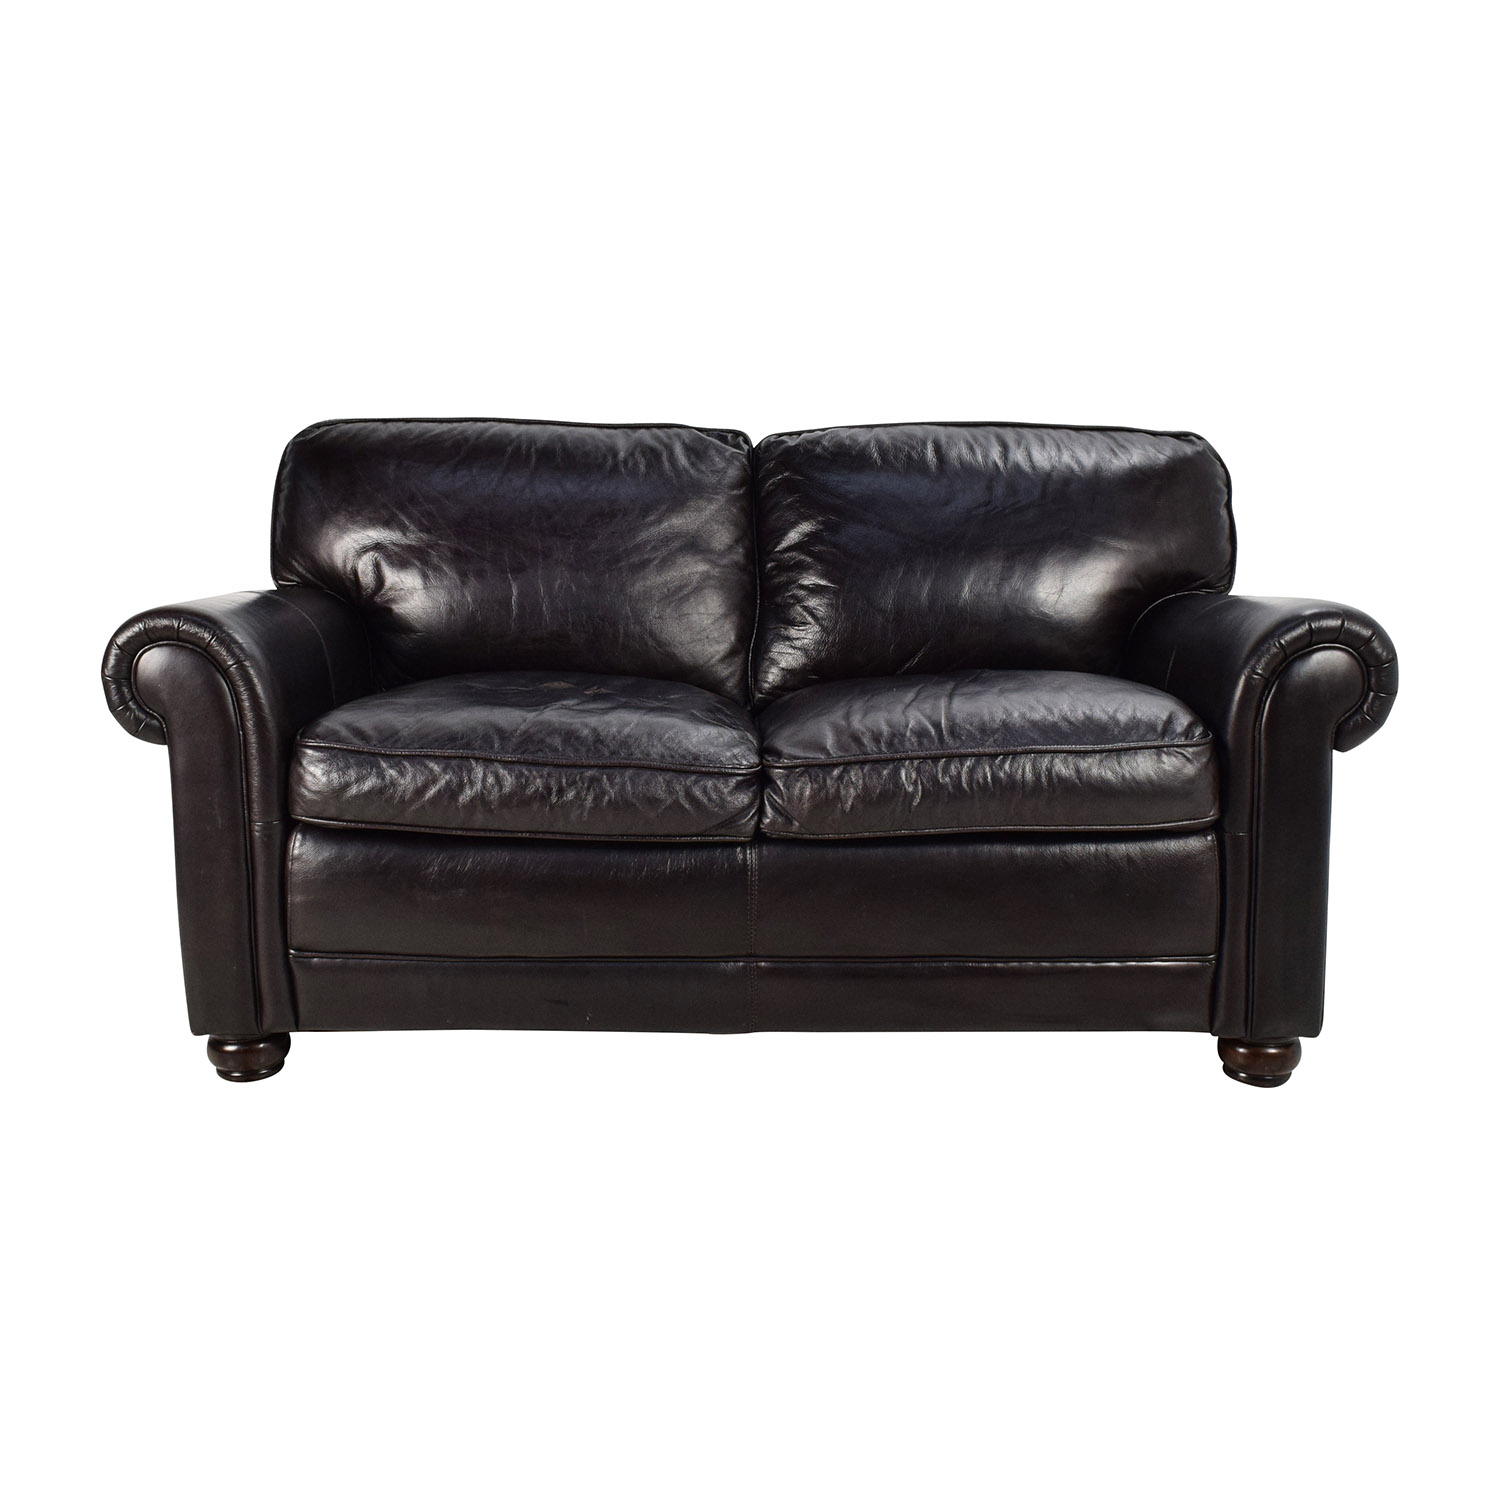 Bobs Furniture Leather Dark Brown Sofa sale